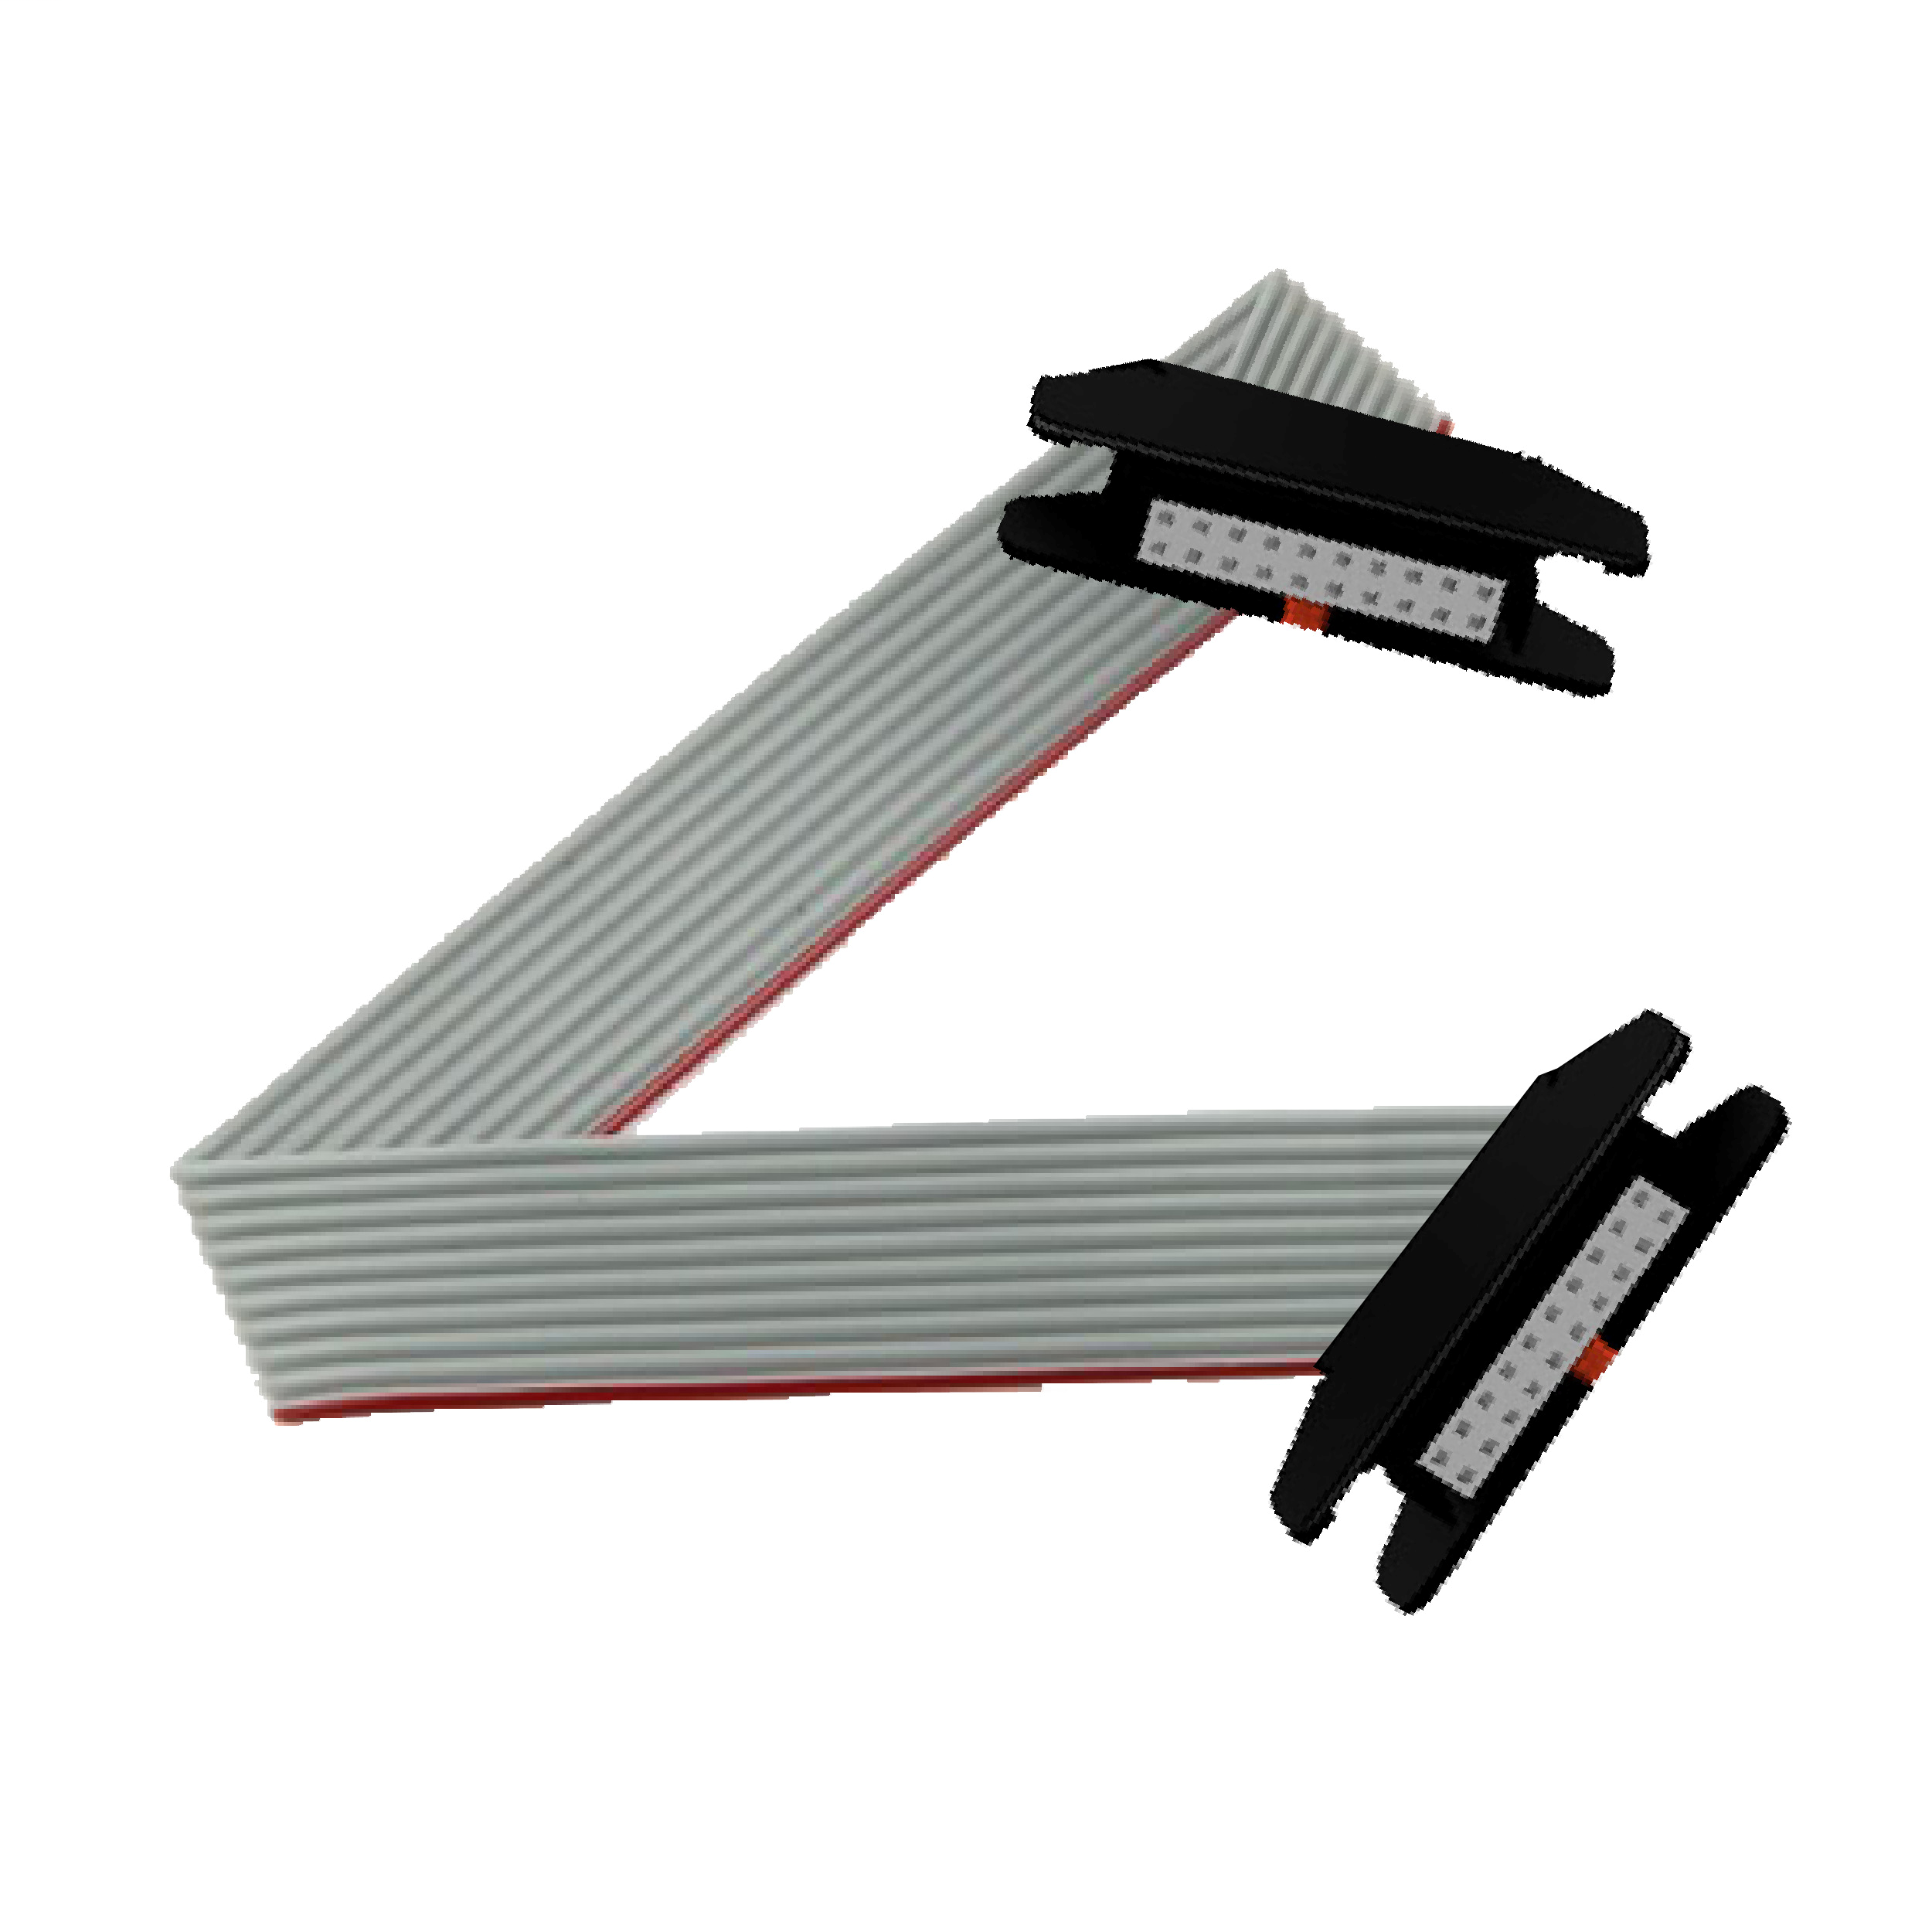 Rolled ribbon connecting cable - for I/O module with HE10 connectors - 3 m